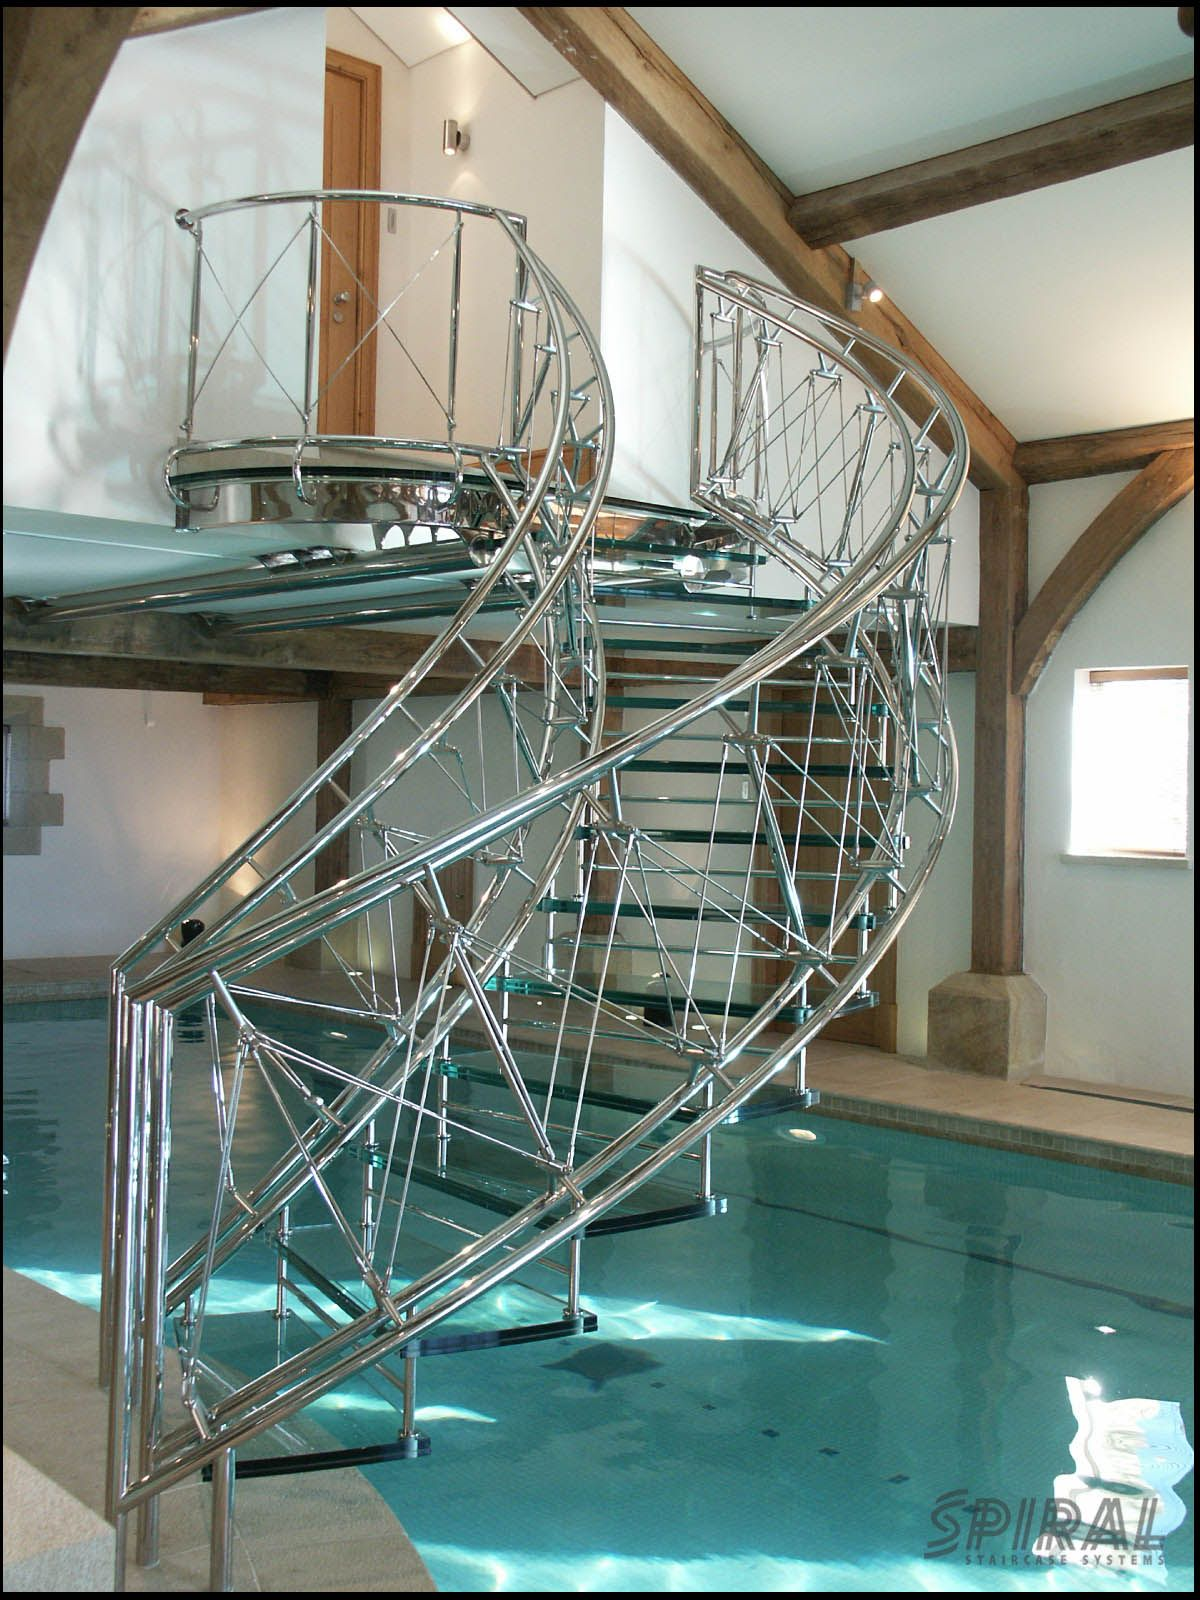 Helical Stair Over A Swimming Pool. Wendeltreppen Aus Einem